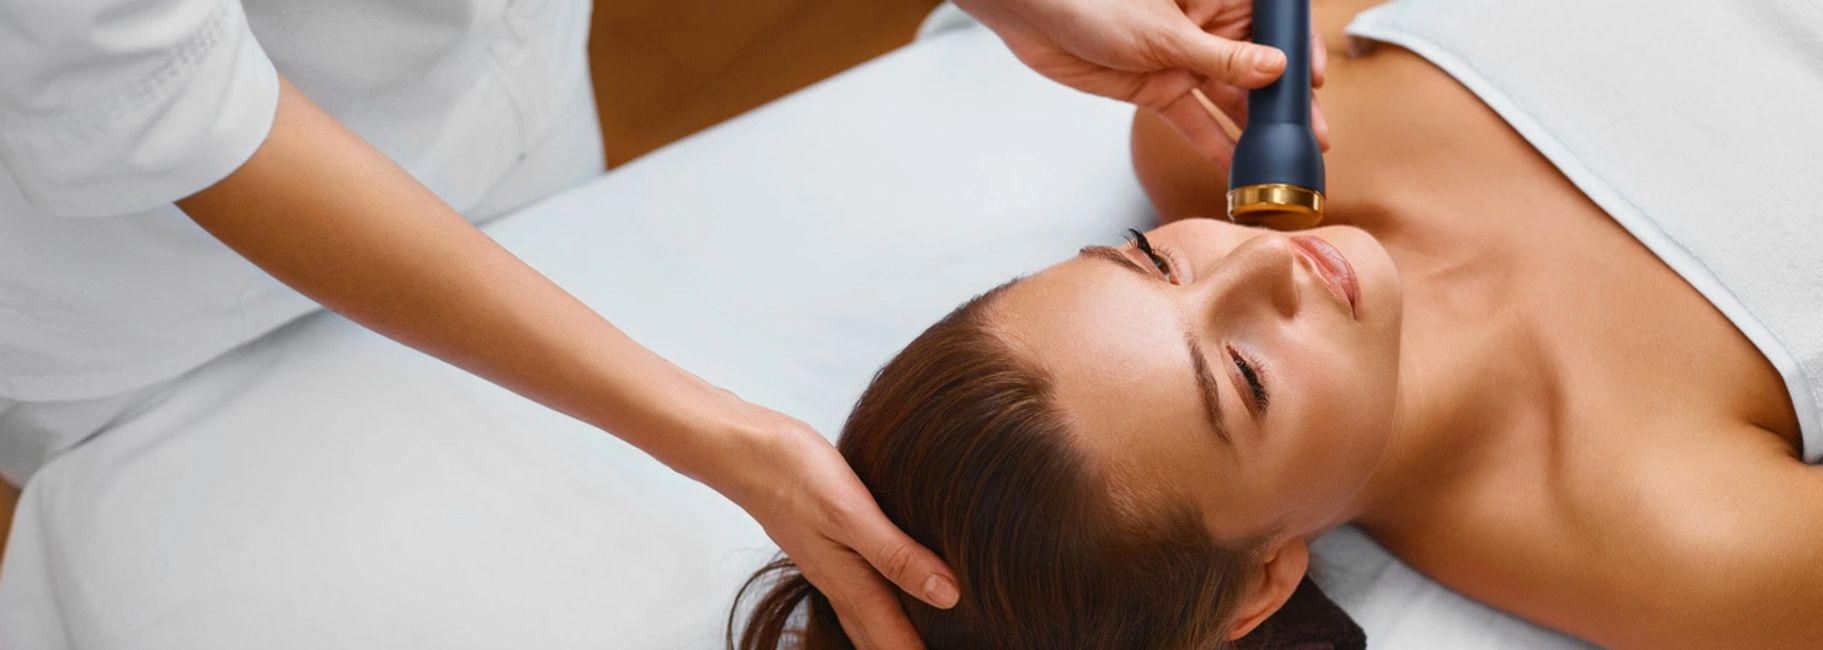 Radio frequency facial can reduce wrinkles and fine lines, aiming to help you look and feel younger.